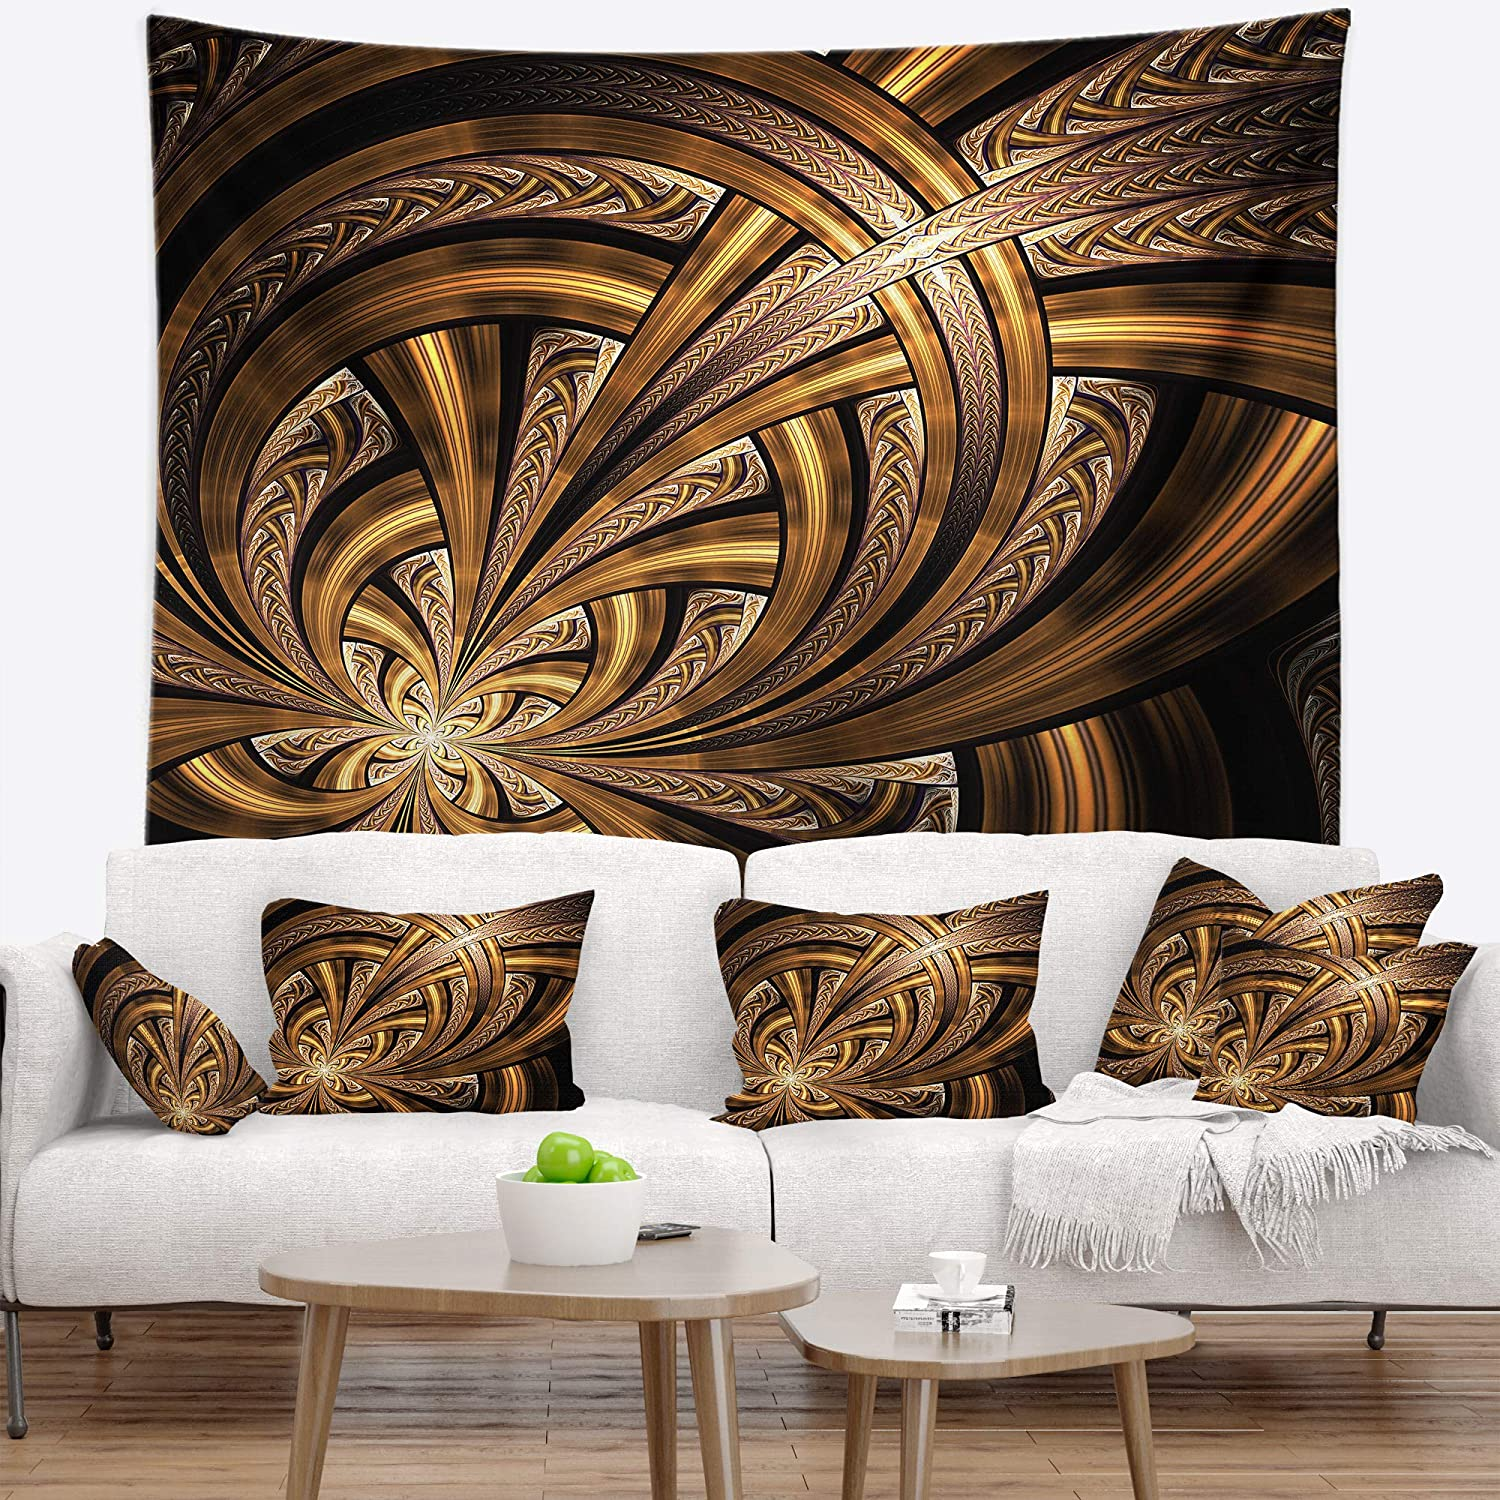 Designart TAP16477-39-32 Dark Orange Fractal Flower Abstract Blanket D/écor Art for Home and Office Wall Tapestry x 32 in Created On Lightweight Polyester Fabric Medium: 39 in